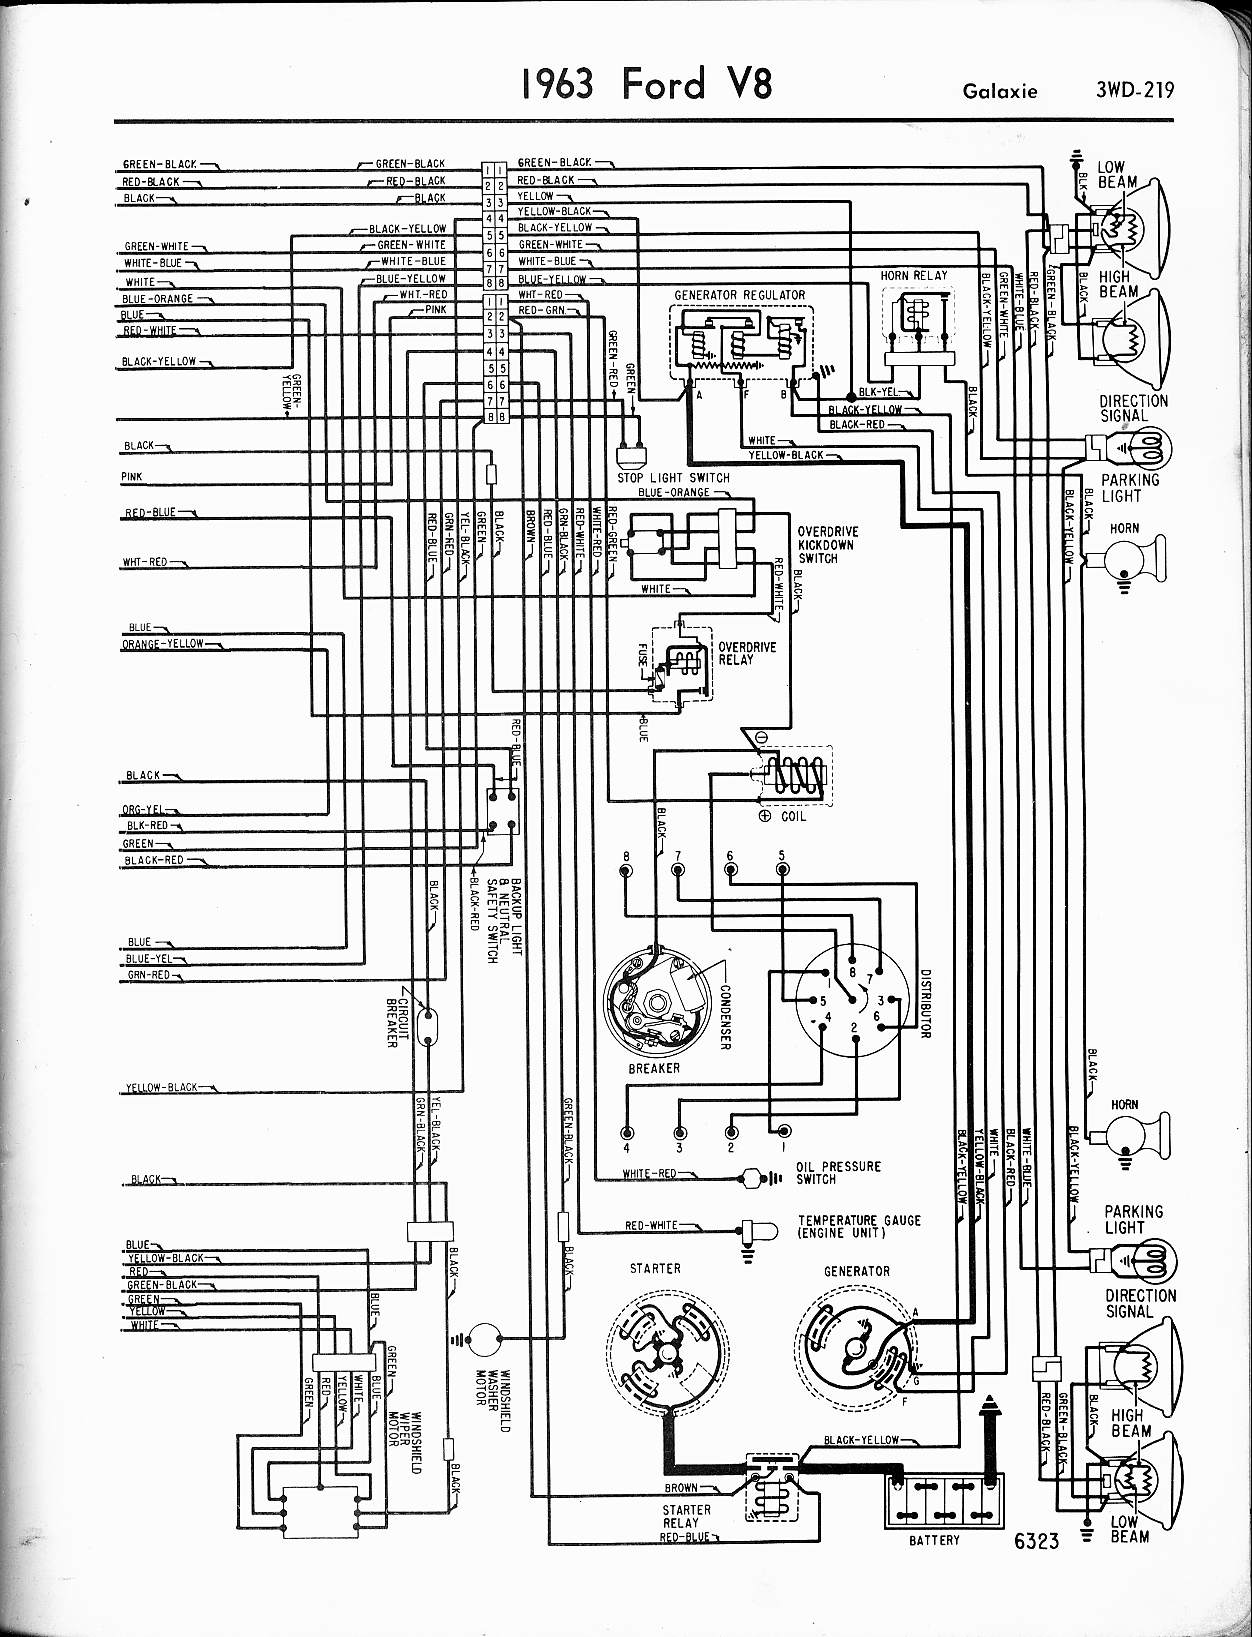 1968 galaxie wiring diagram wiring diagram ford galaxie questions car wont start